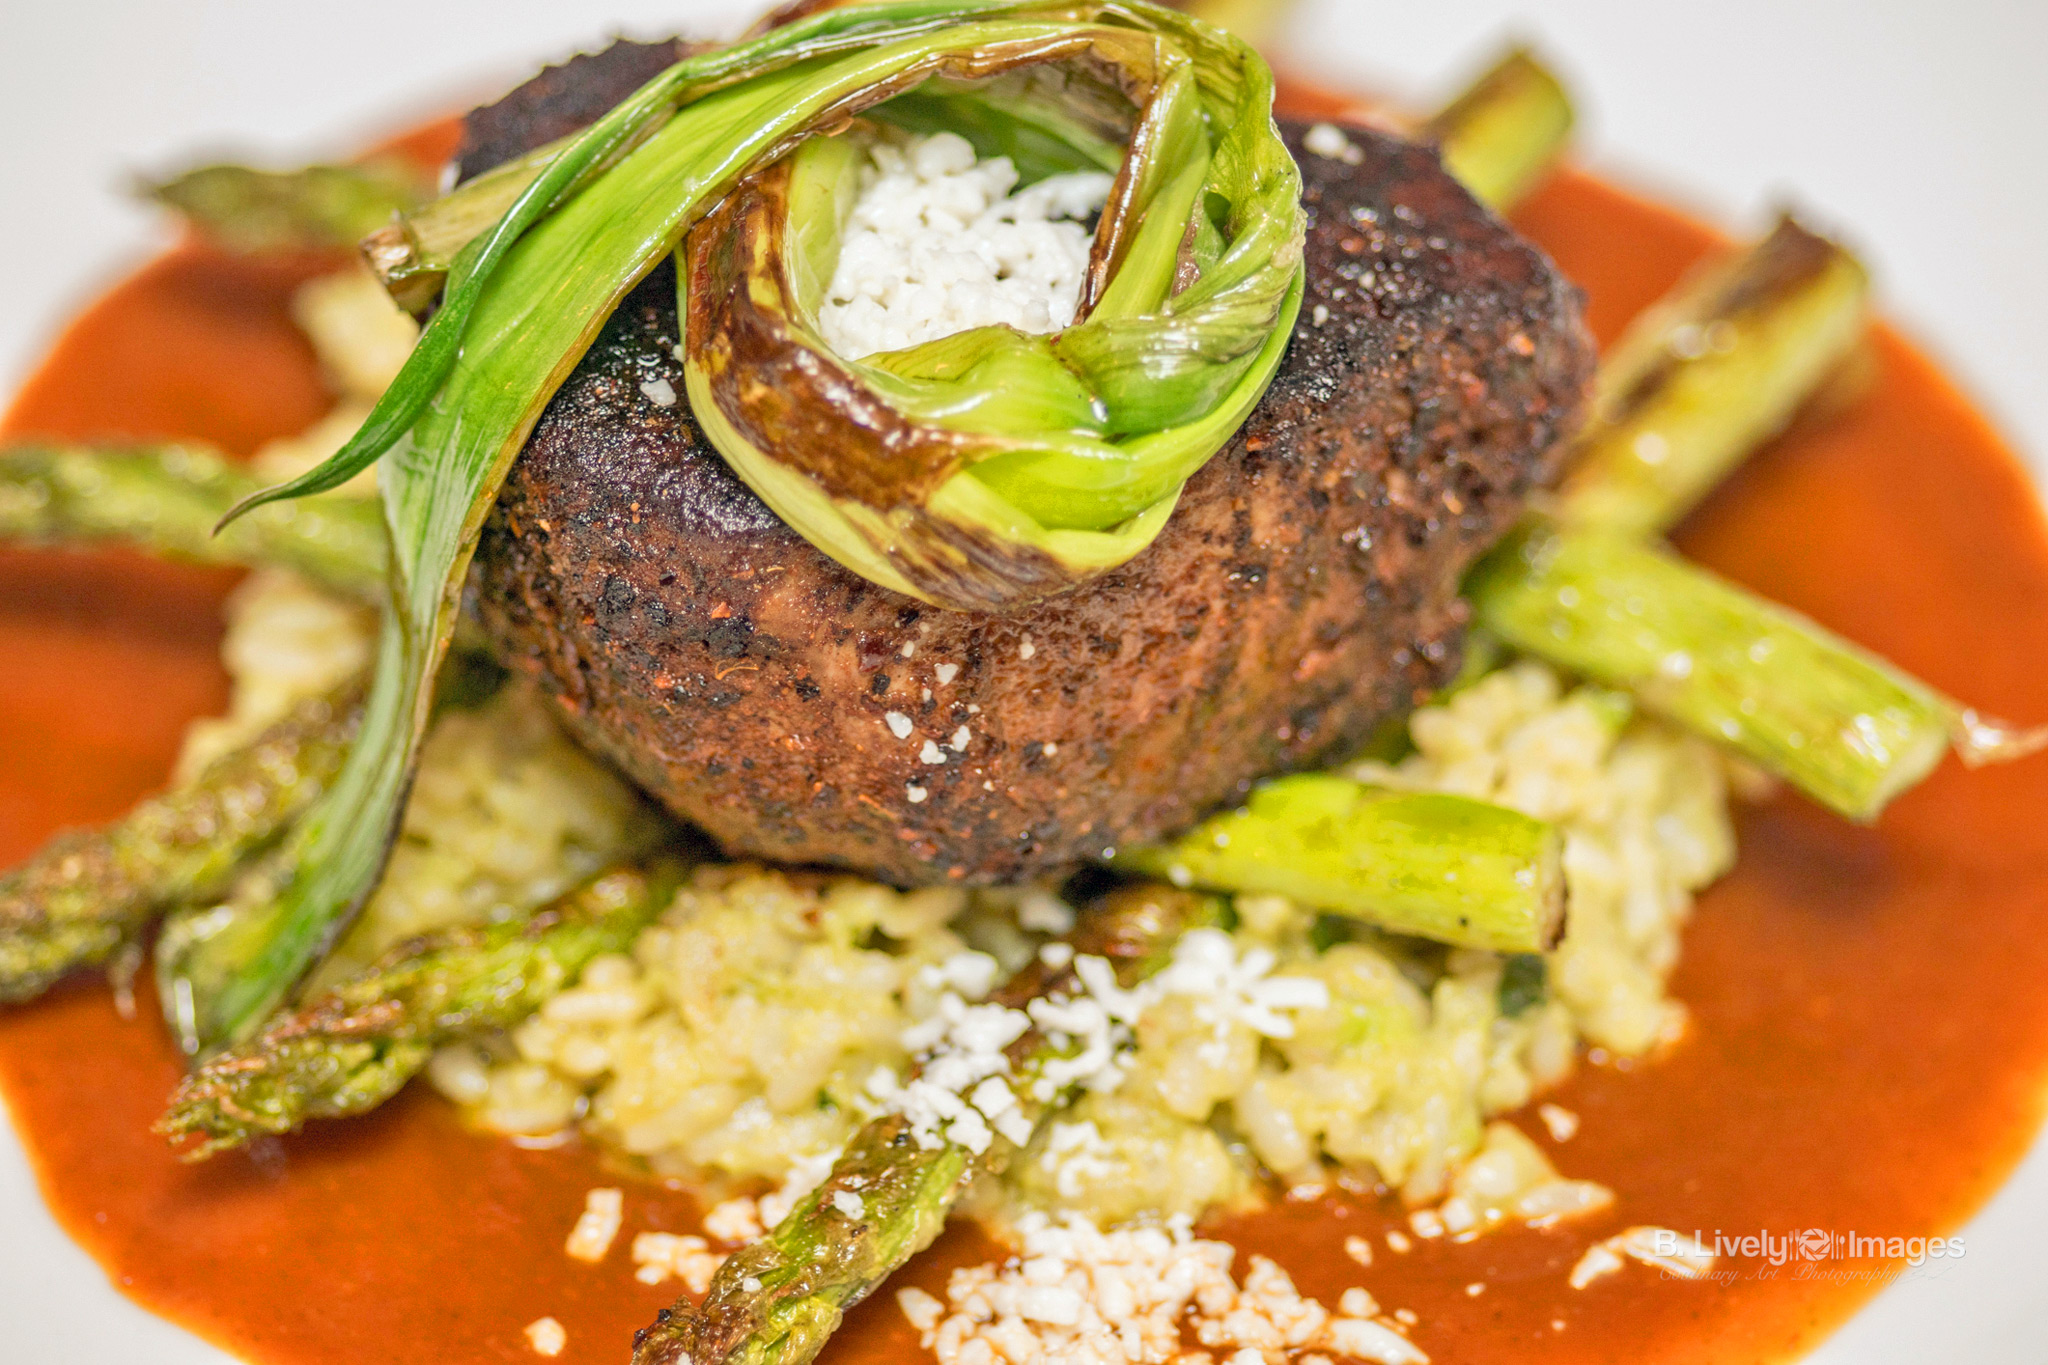 Filete - Ancho chile rubbed filet mignon, avocado risotto, ancho chile sauce, and queso fresco.